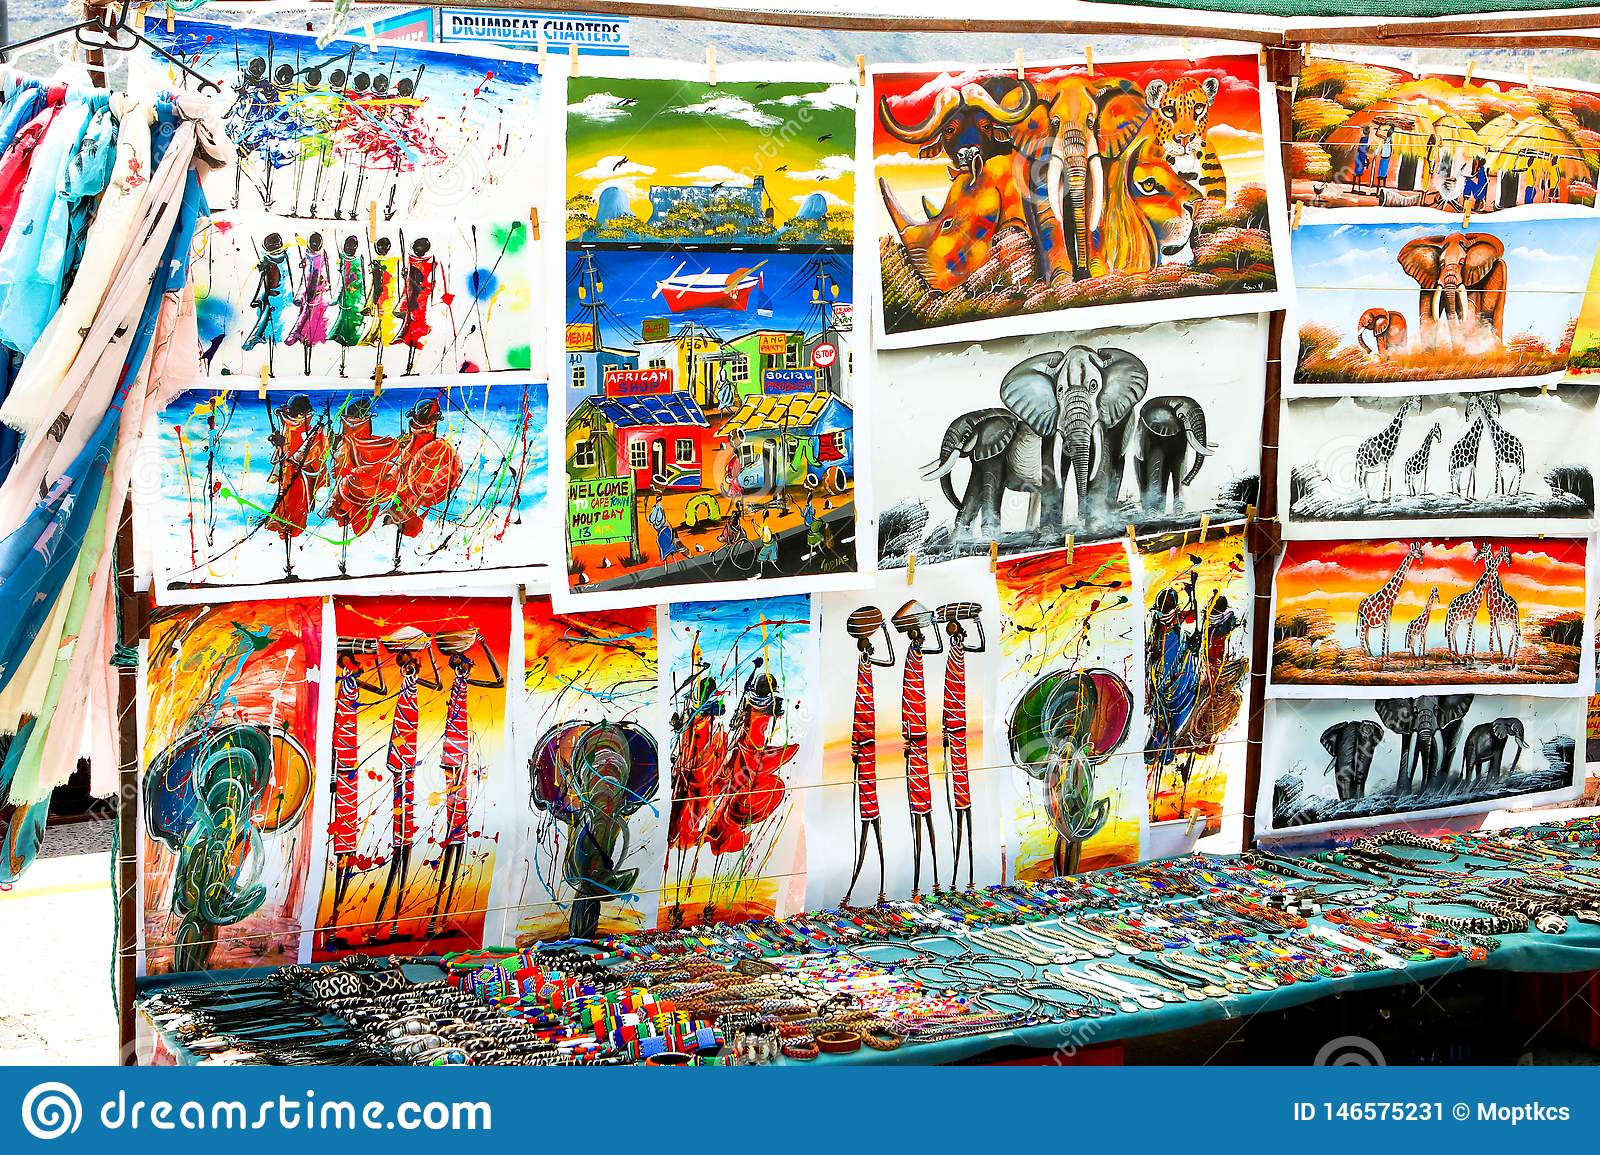 HOUT BAY, CAPE TOWN, SOUTH AFRICA - DECEMBER 24, 2017: Traditional african paintings, handmade accessories and souvenirs at local